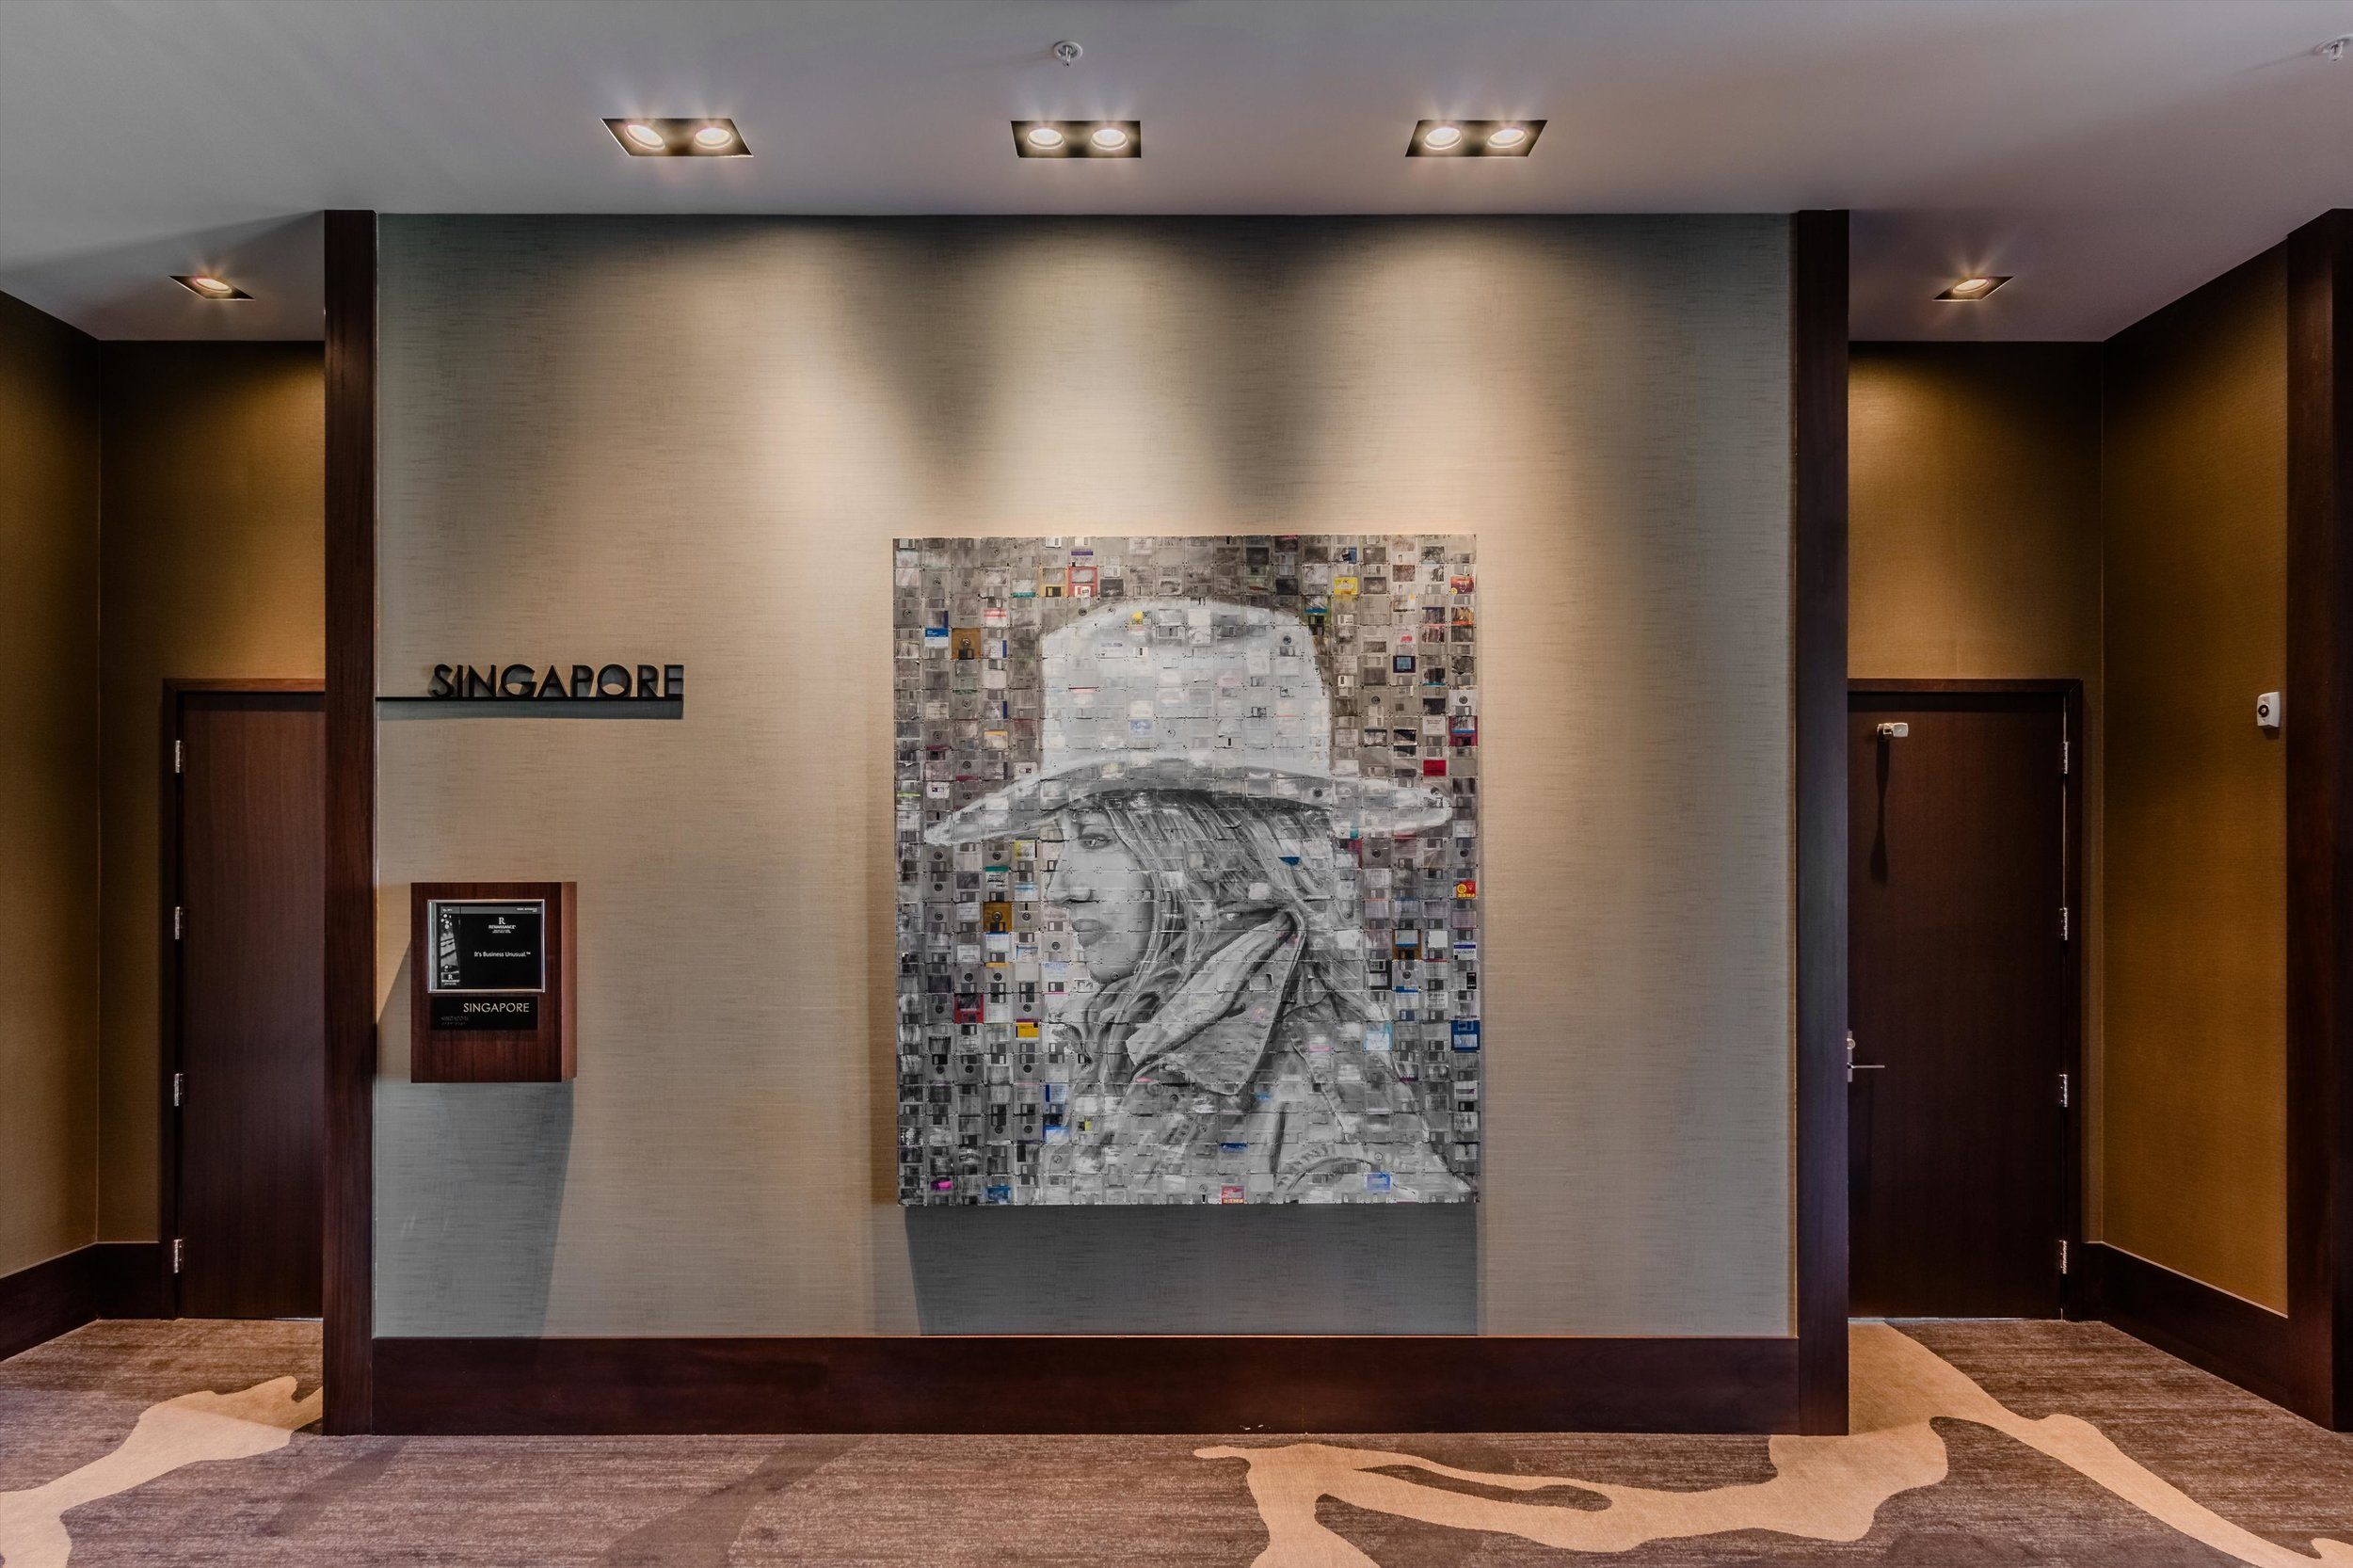 RENAISSANCE, PLANO TX - Curated by Indiewalls